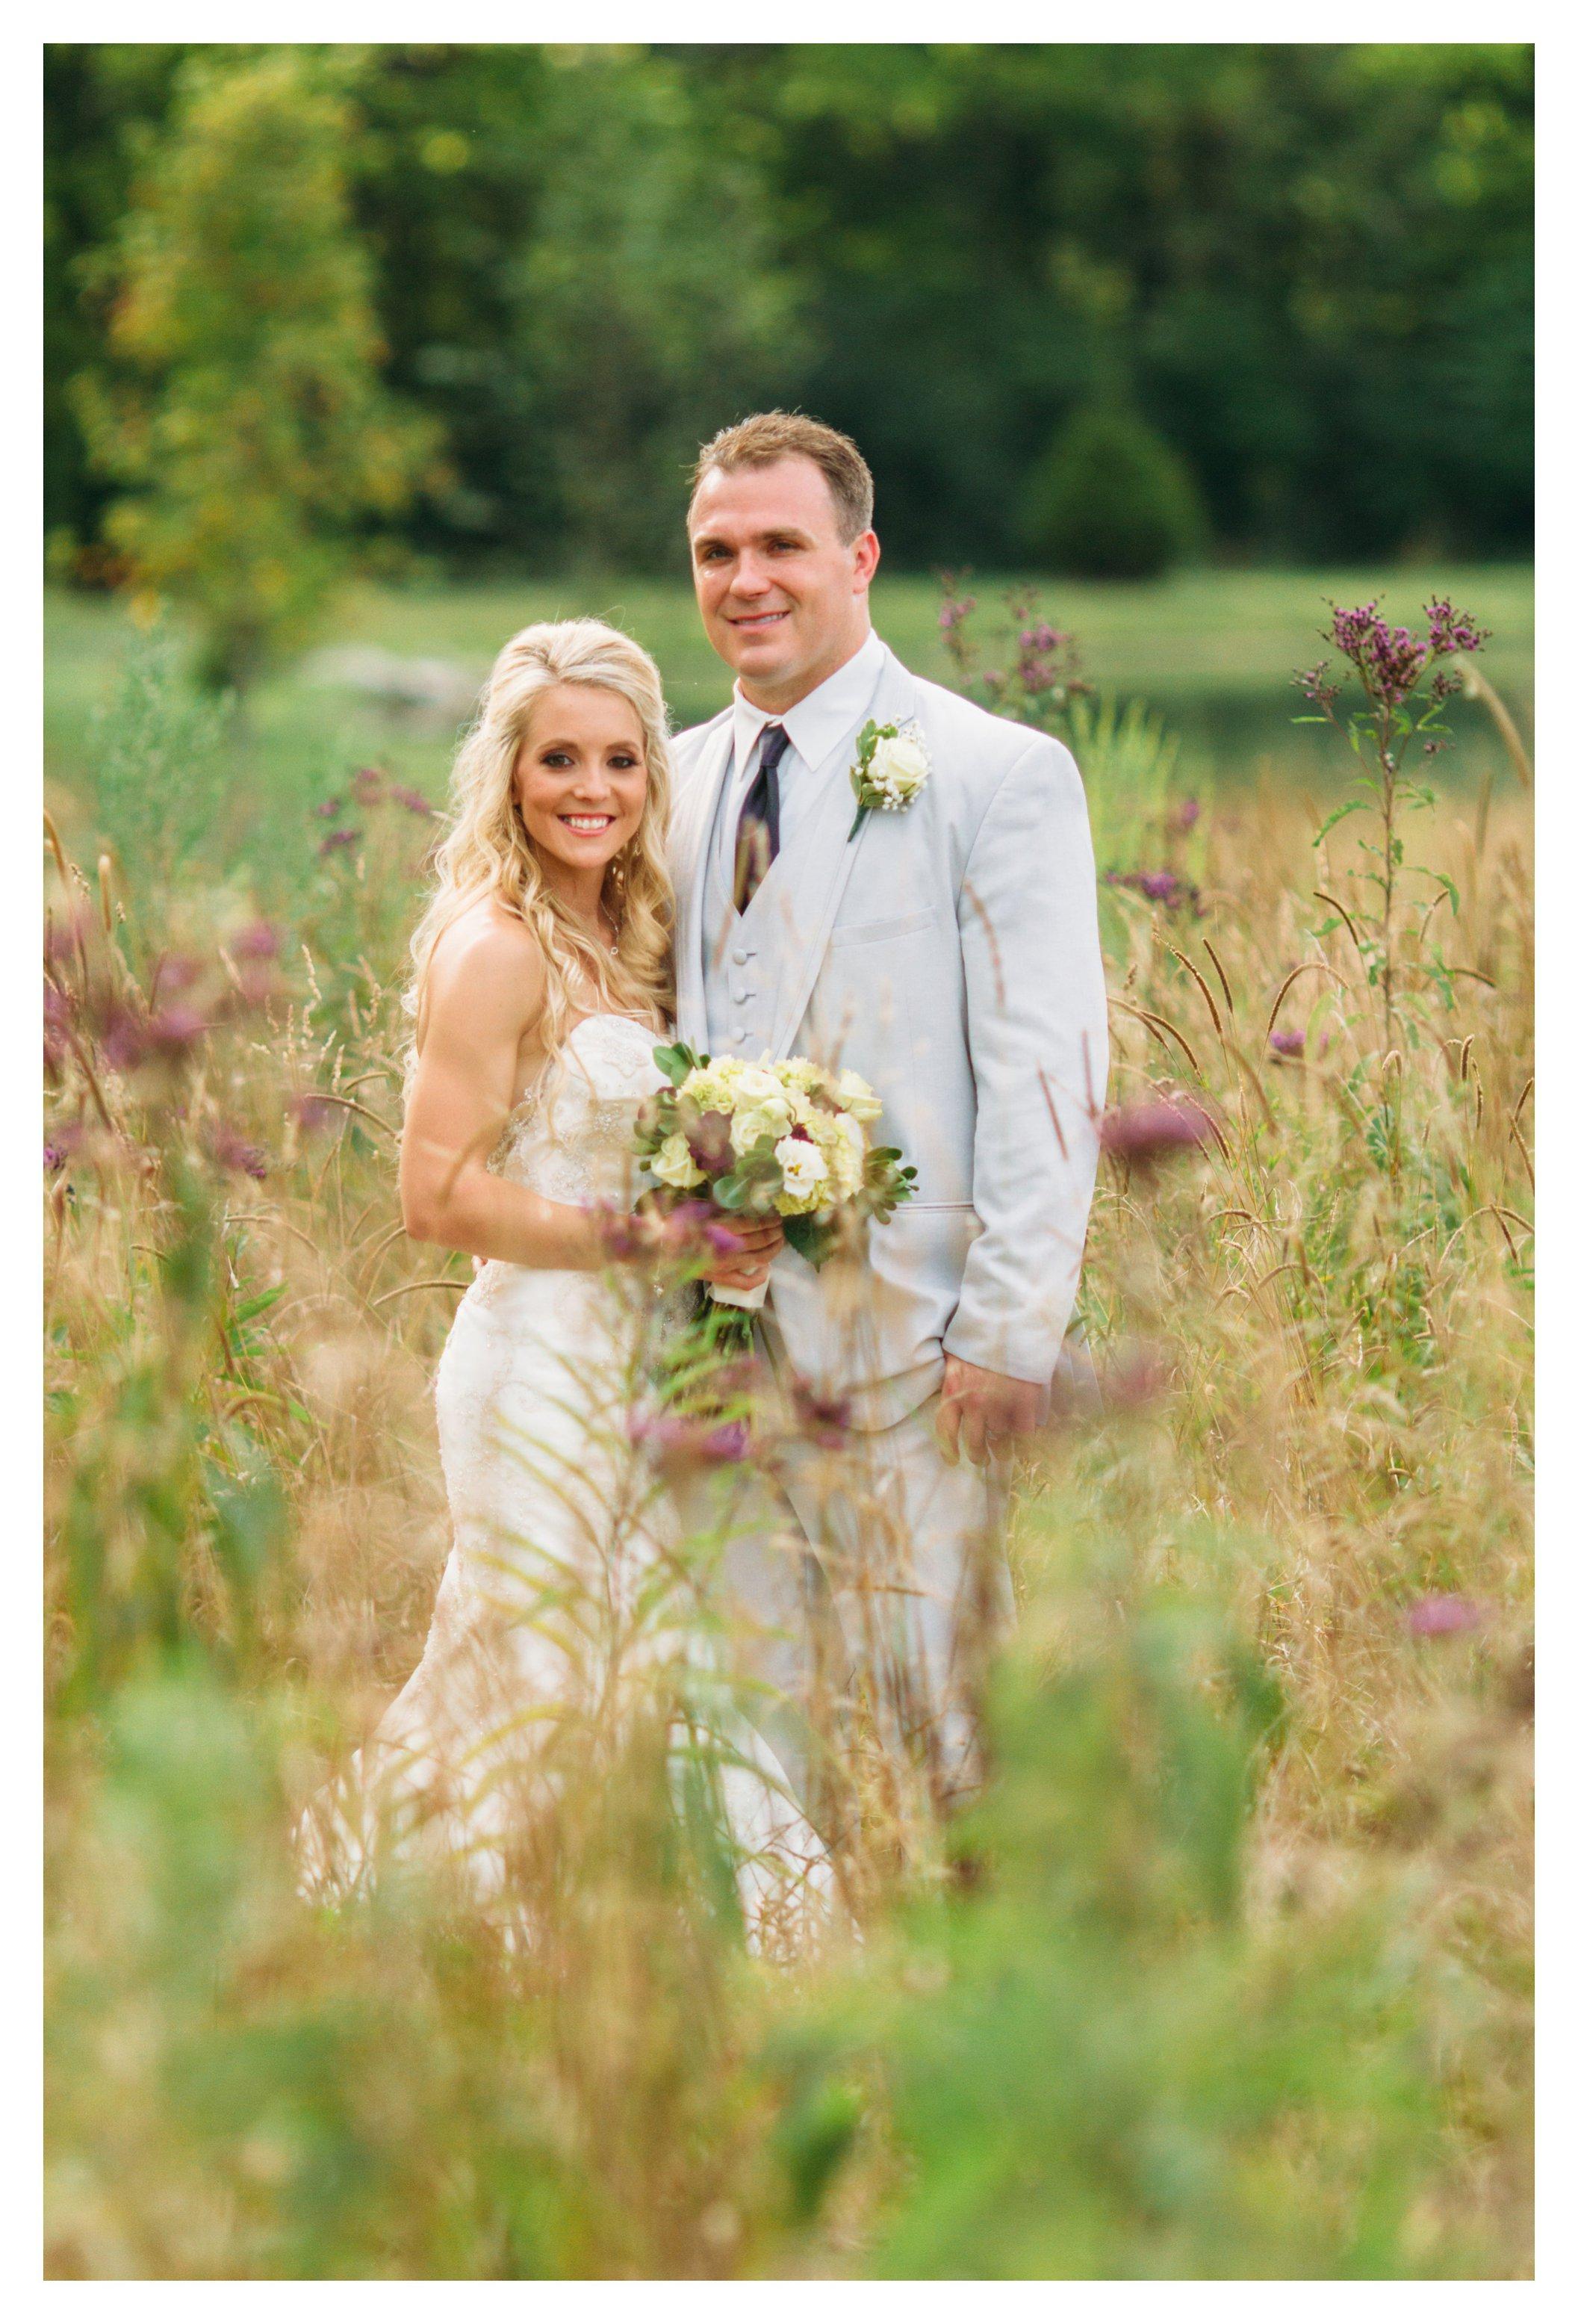 Dayton wedding photographer 3946